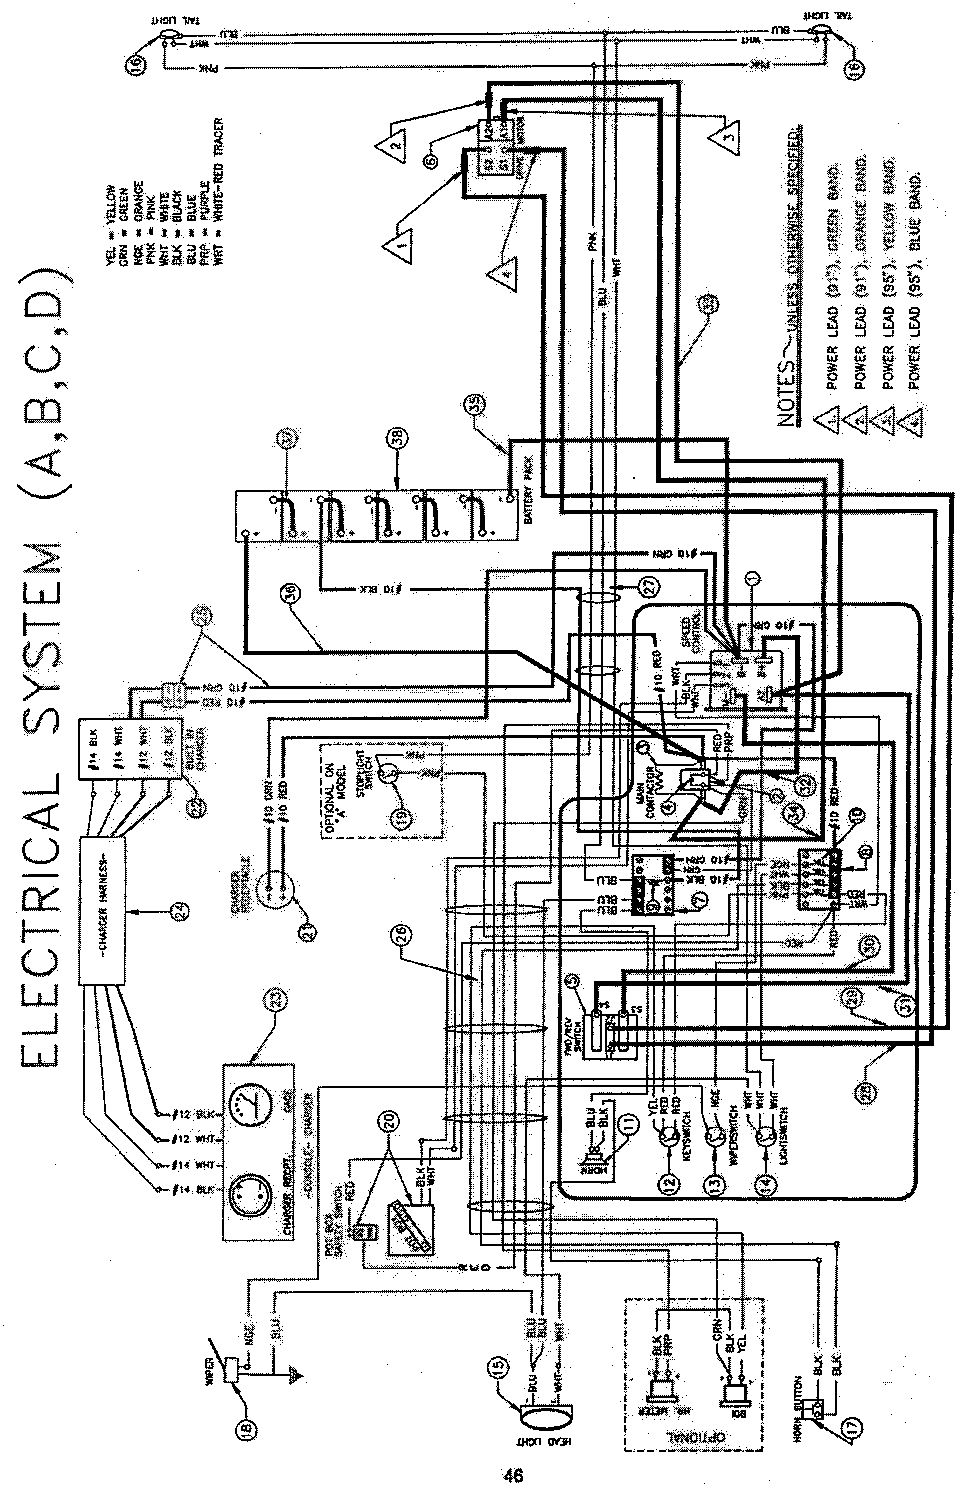 Nordskog280_92plus vintagegolfcartparts com westinghouse golf cart wiring diagram at arjmand.co